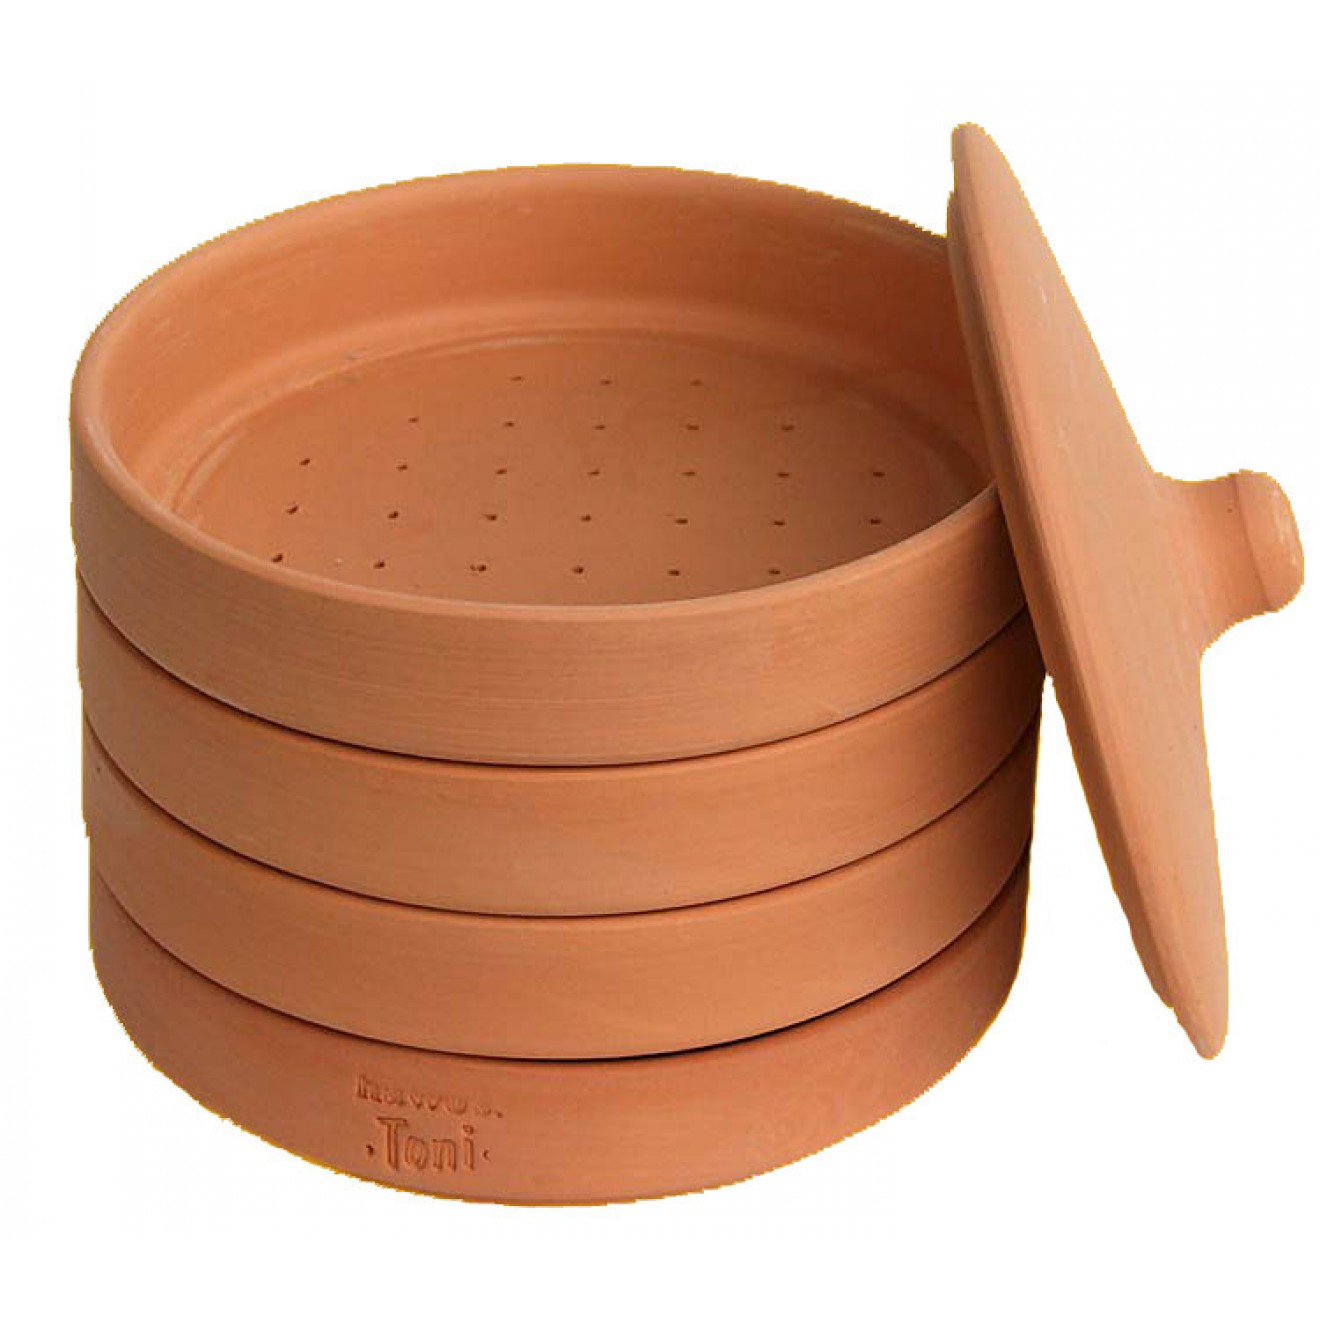 hawos Toni terracotta Sprouter